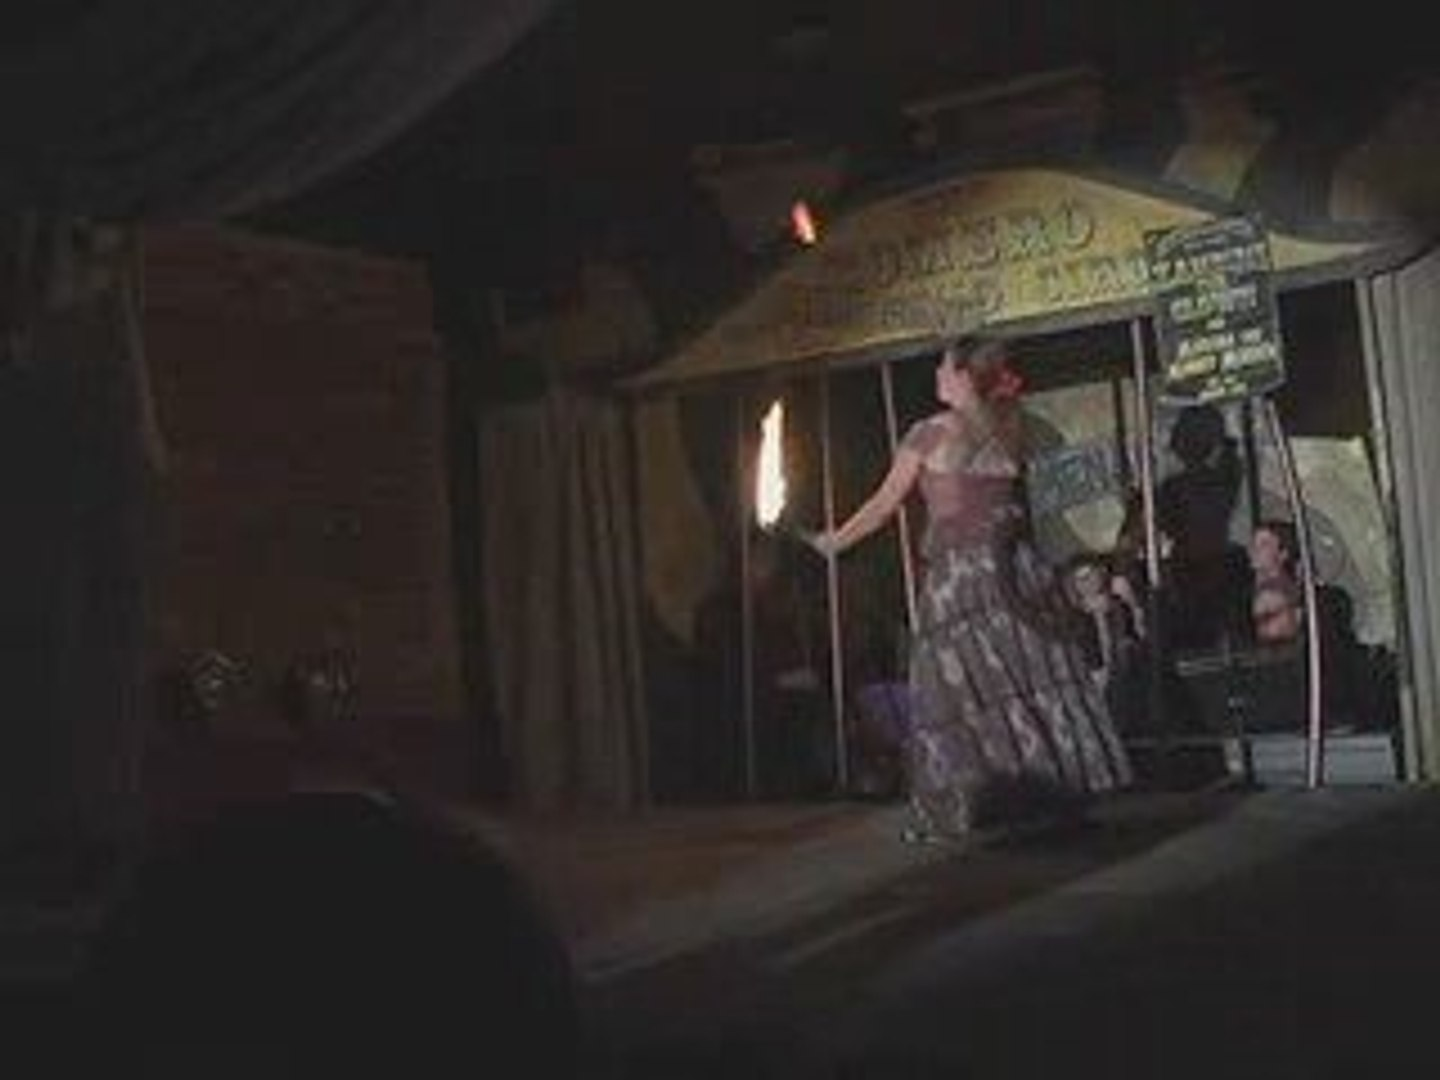 Zombozo, A Silent Movie Play about a Zombie Clown